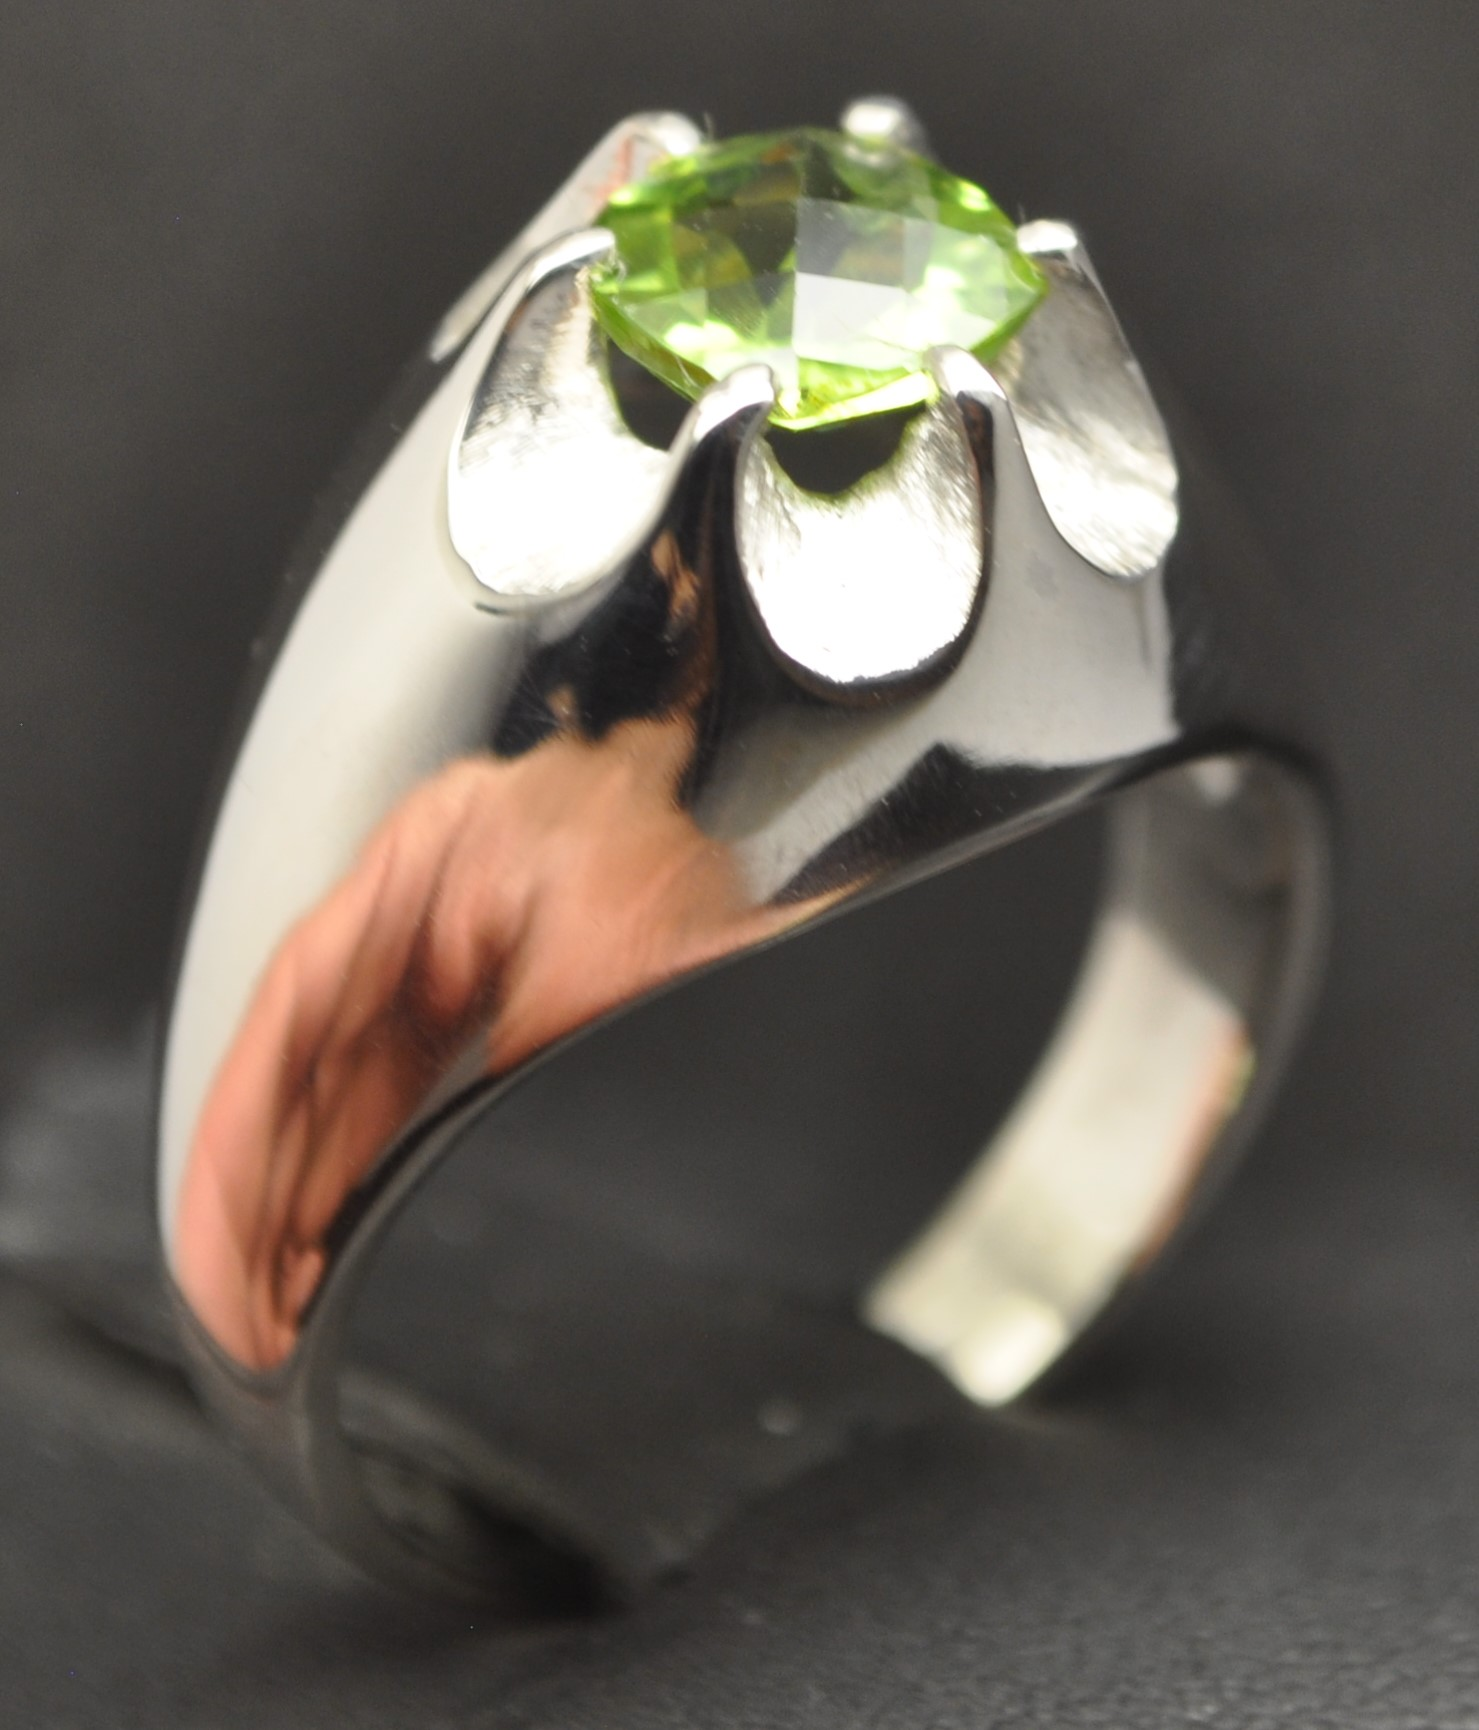 http://stores.ebay.com/J-Pena-Jewelry?_dmd=1&_nkw=PERIDOTPERIDOT PARROT GREEN STERLING SILVER CLAW MENS RING